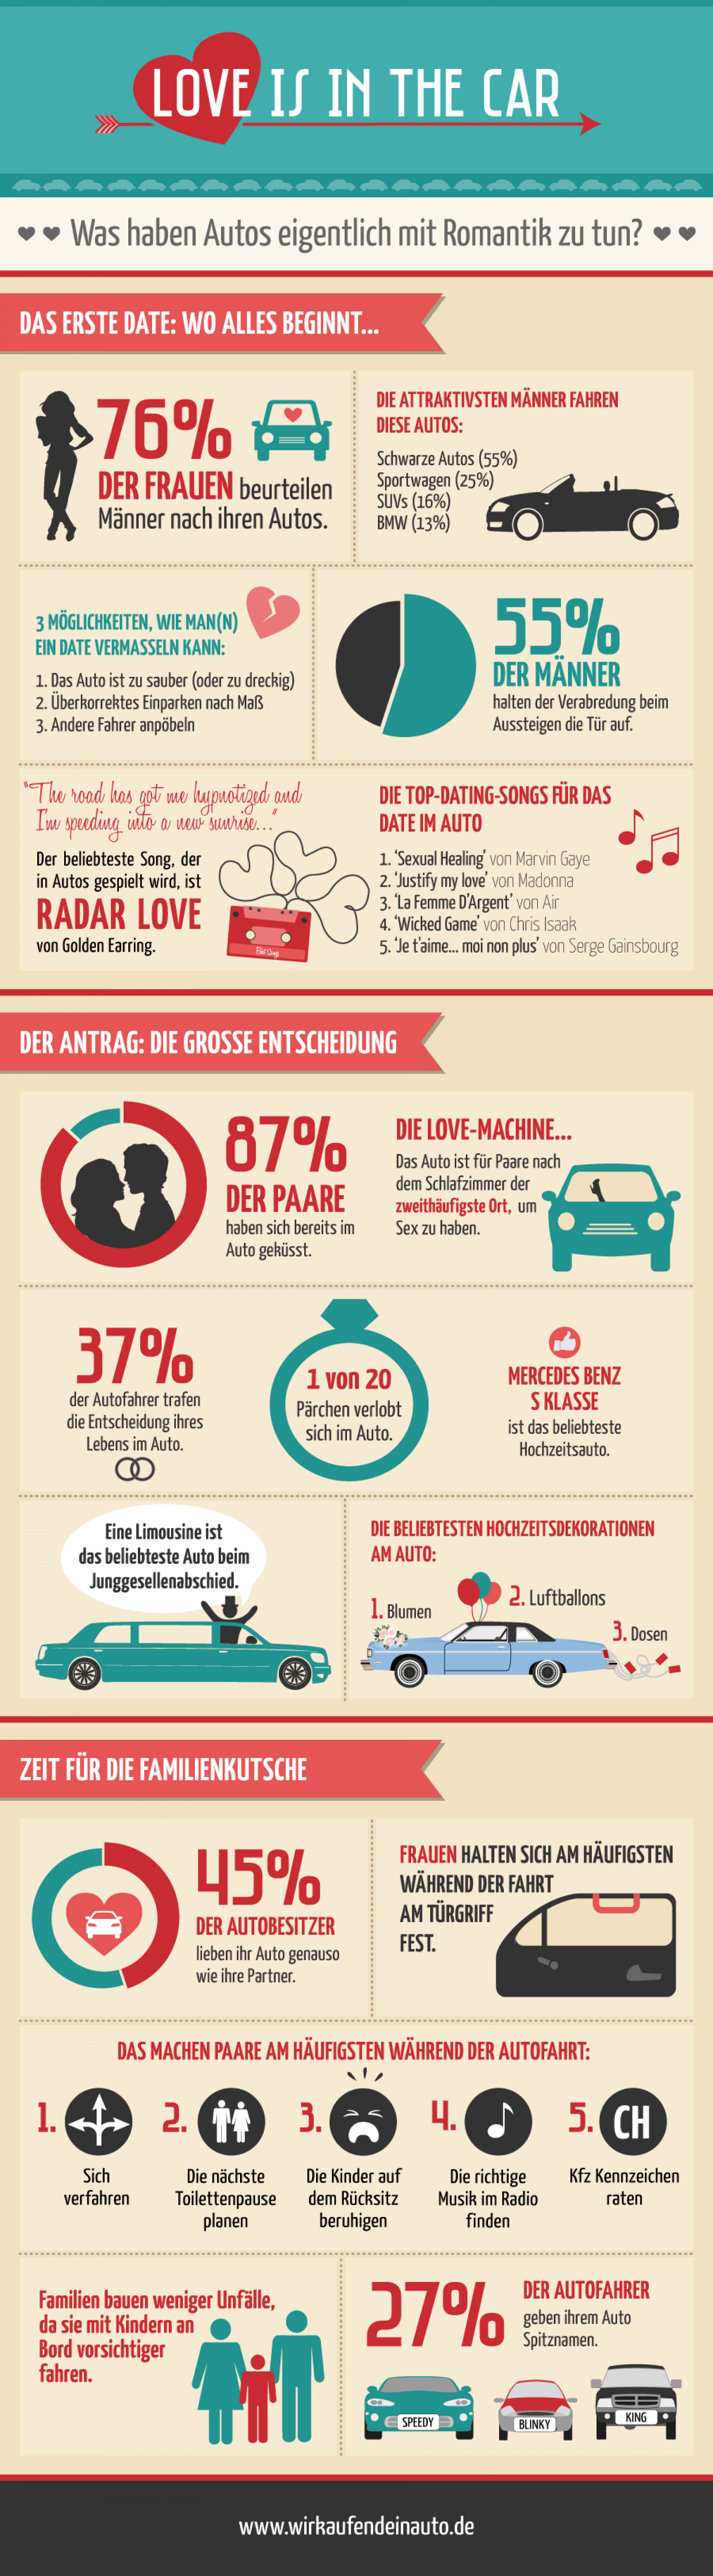 Lovers and Car Infographic